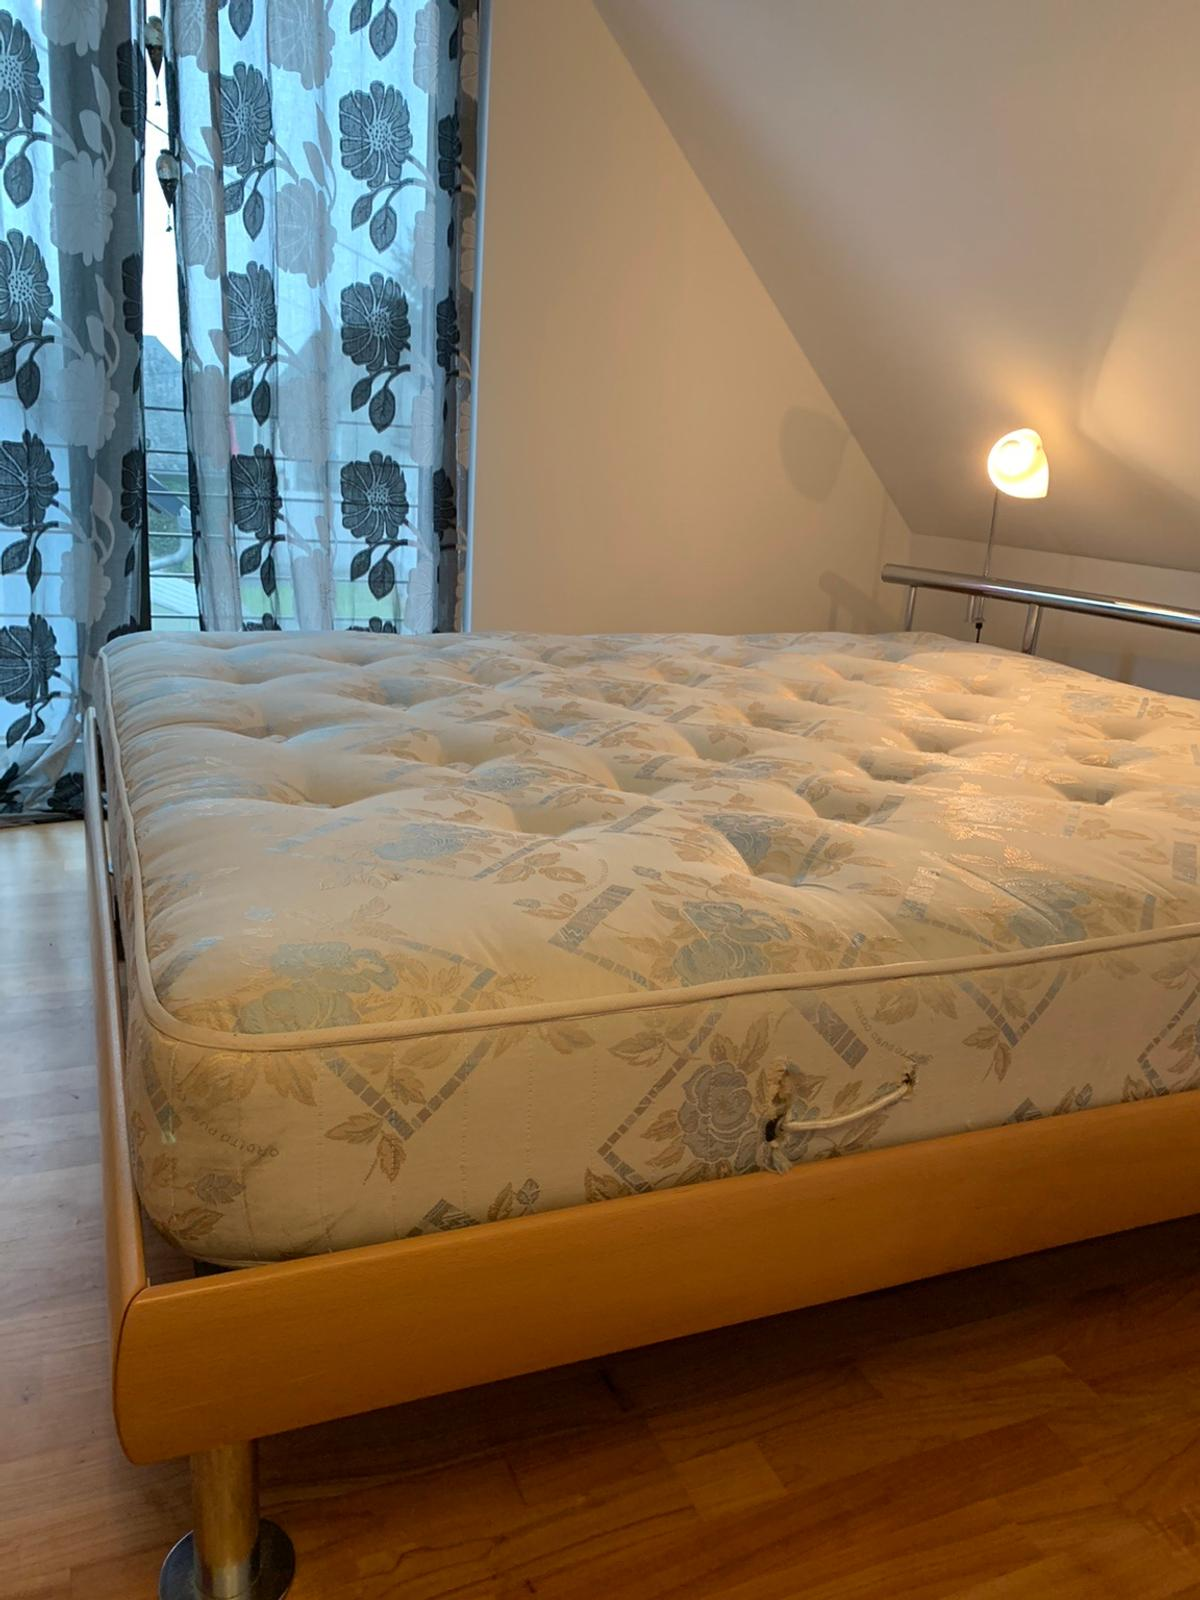 Bett 1 8 X 2 M In Montabaur For 39 00 For Sale Shpock